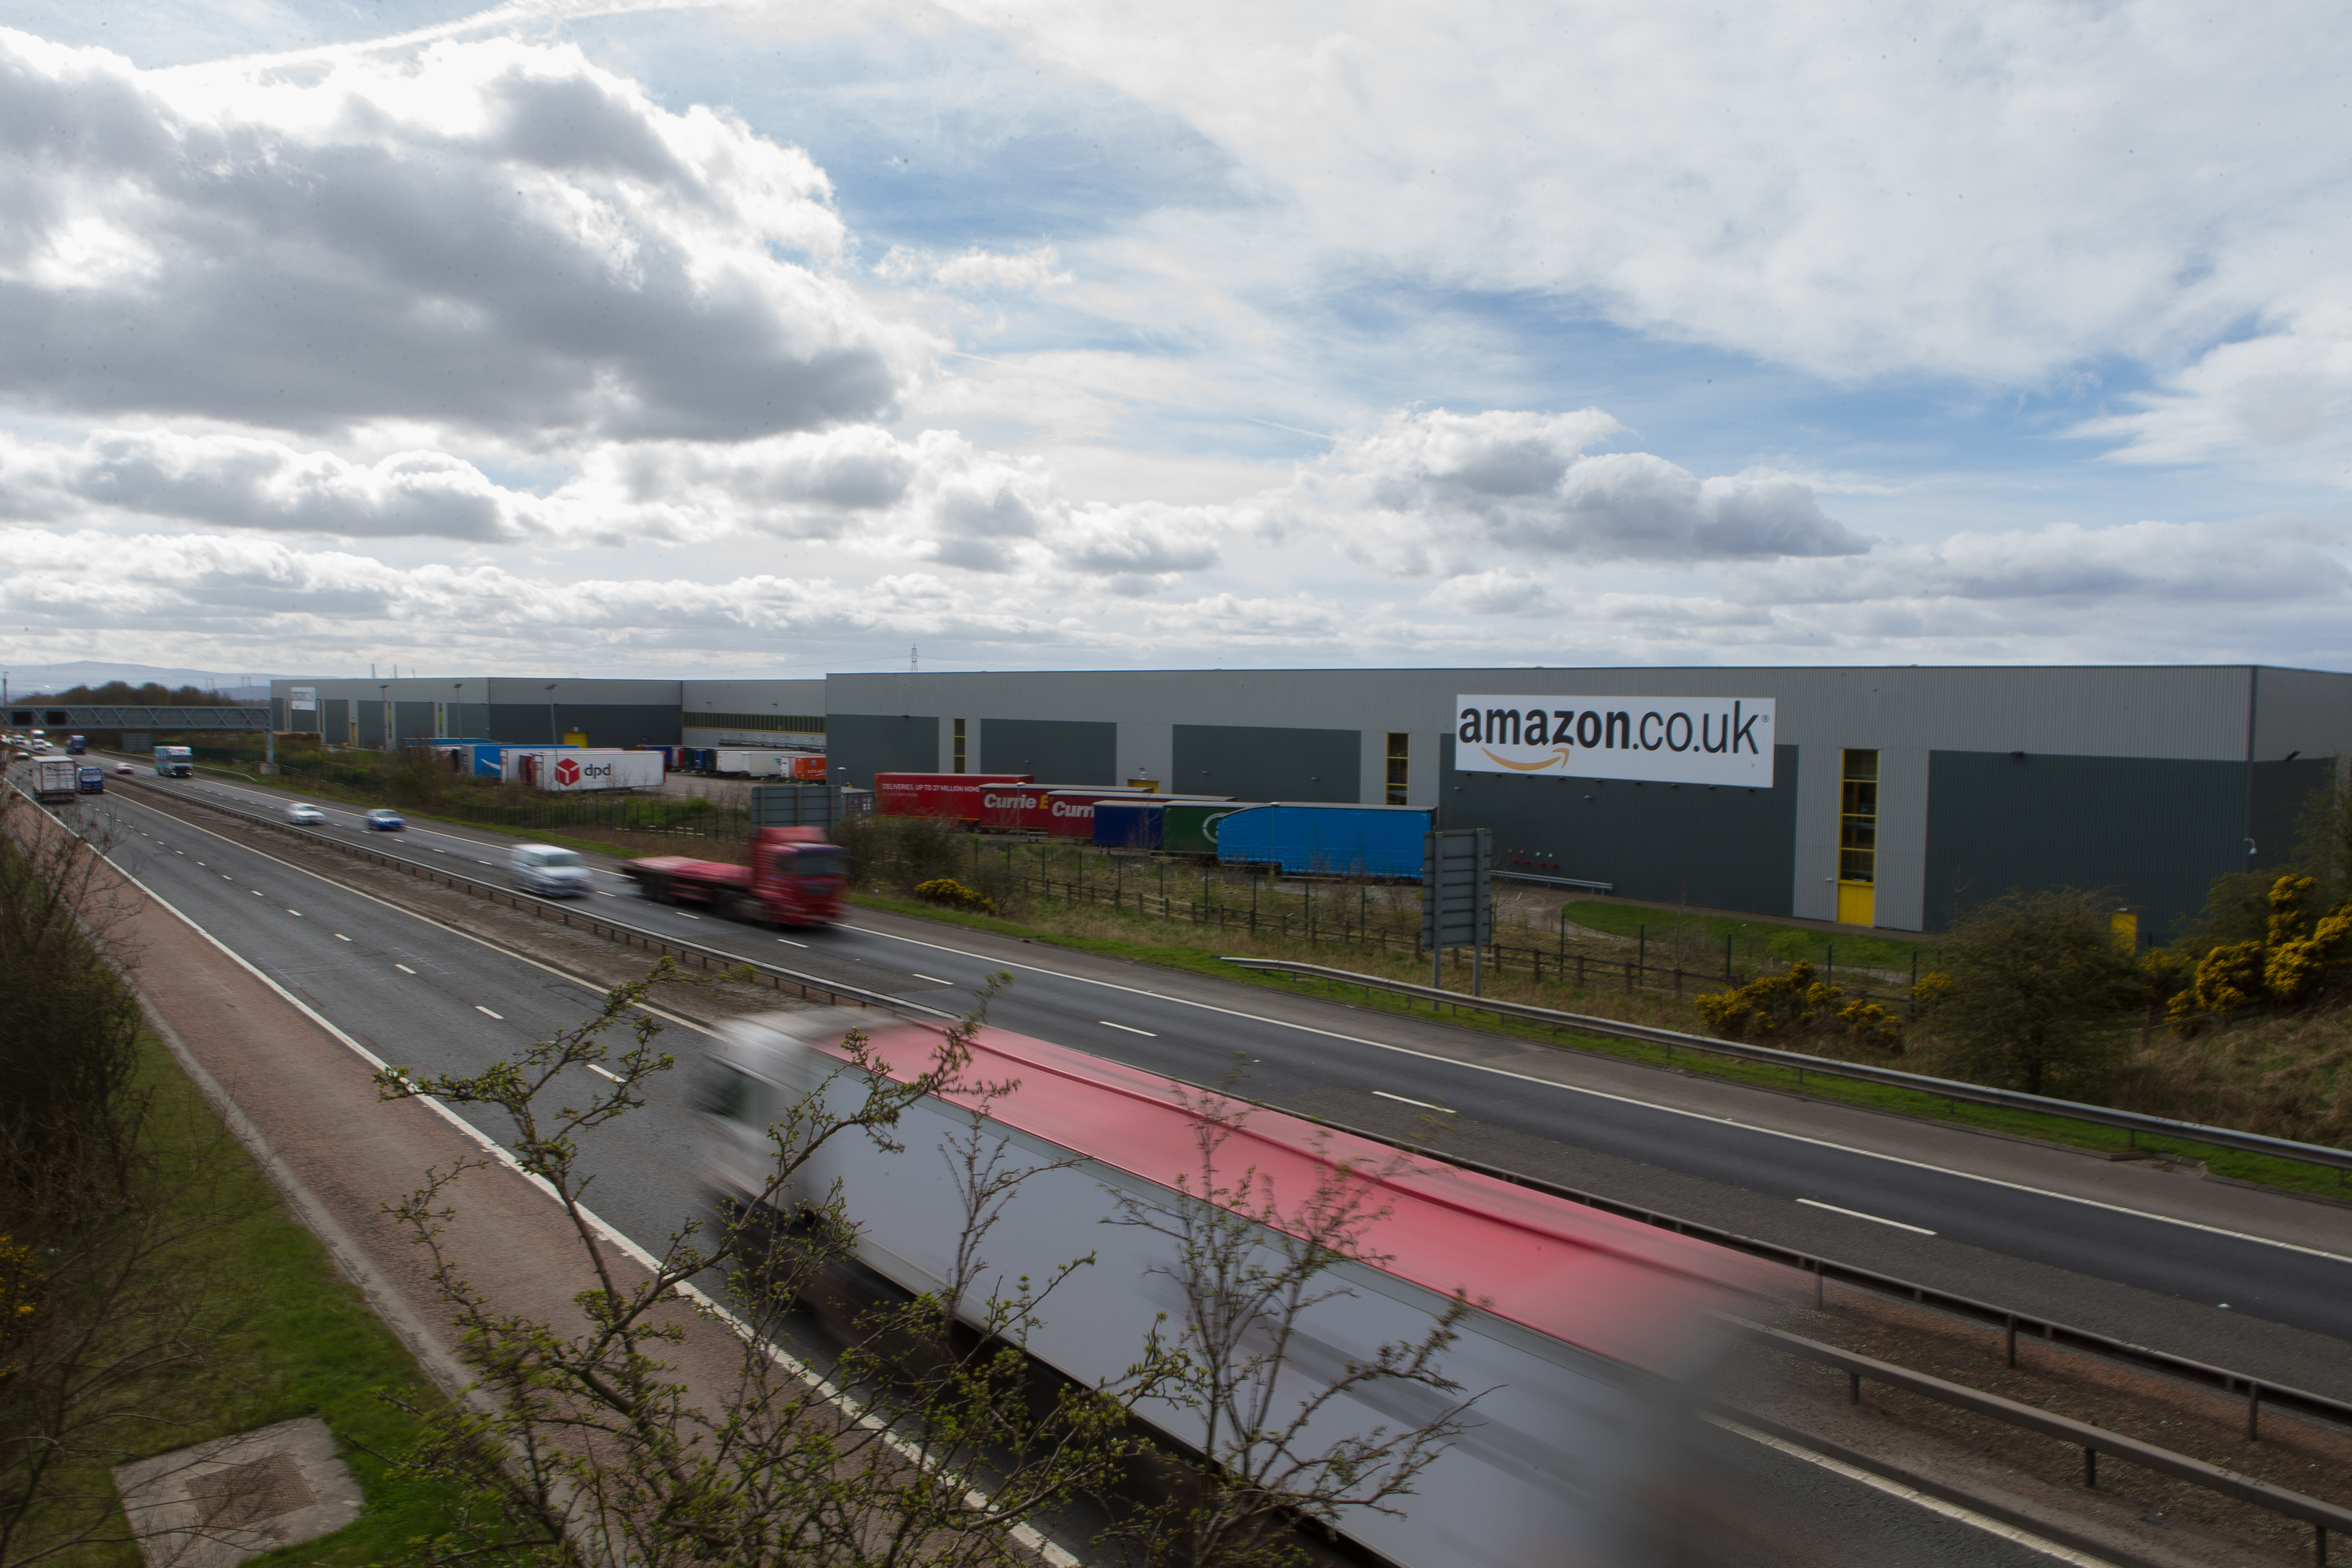 The Amazon distribution facility in Dunfermline alongside the M90